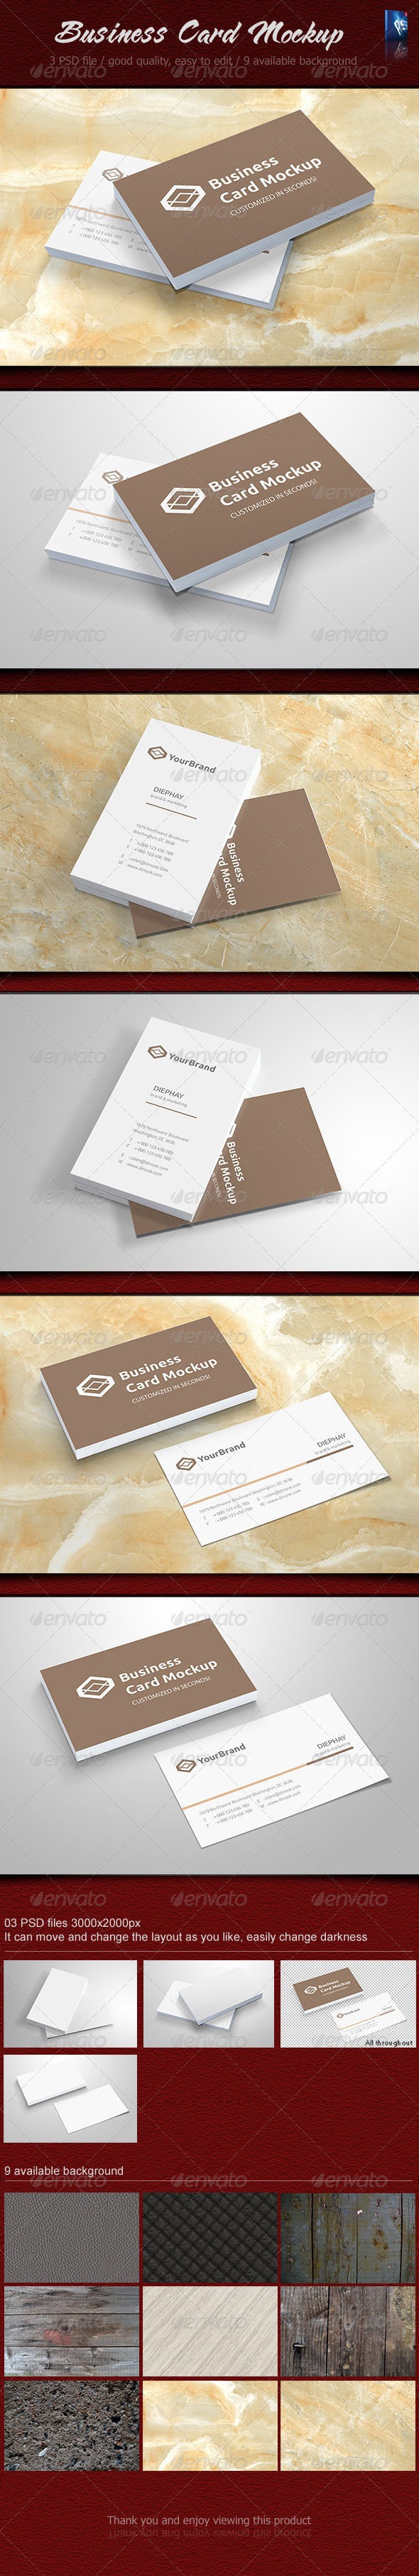 GraphicRiver Business card Mockup 6058393